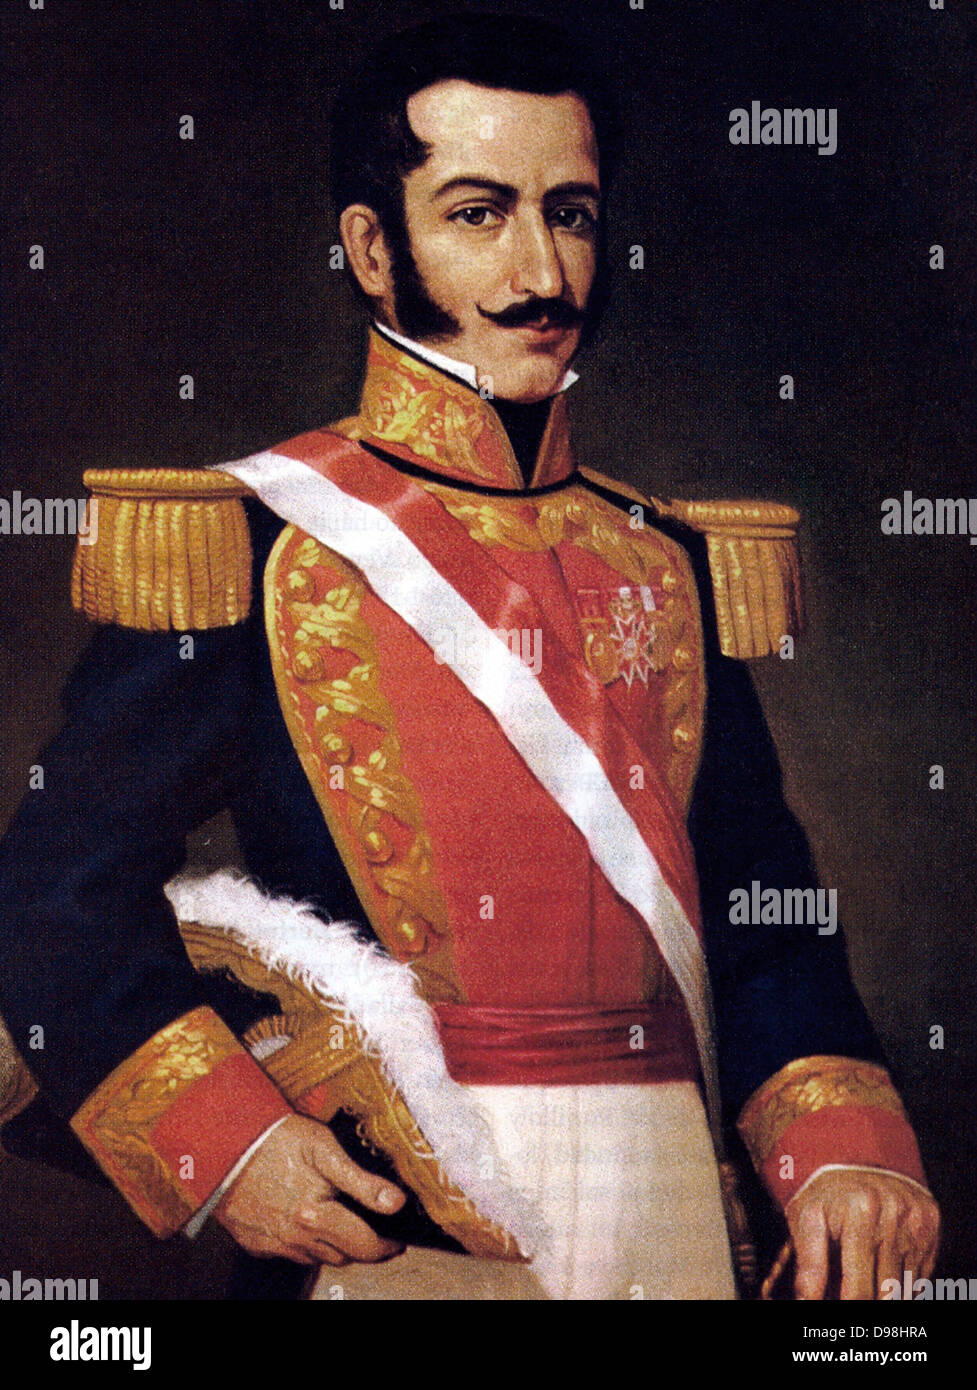 Felipe Santiago de Salaverry (1805-1836) Peruvian soldier, politician and, from 1835 to 1836, President of Peru. - Stock Image